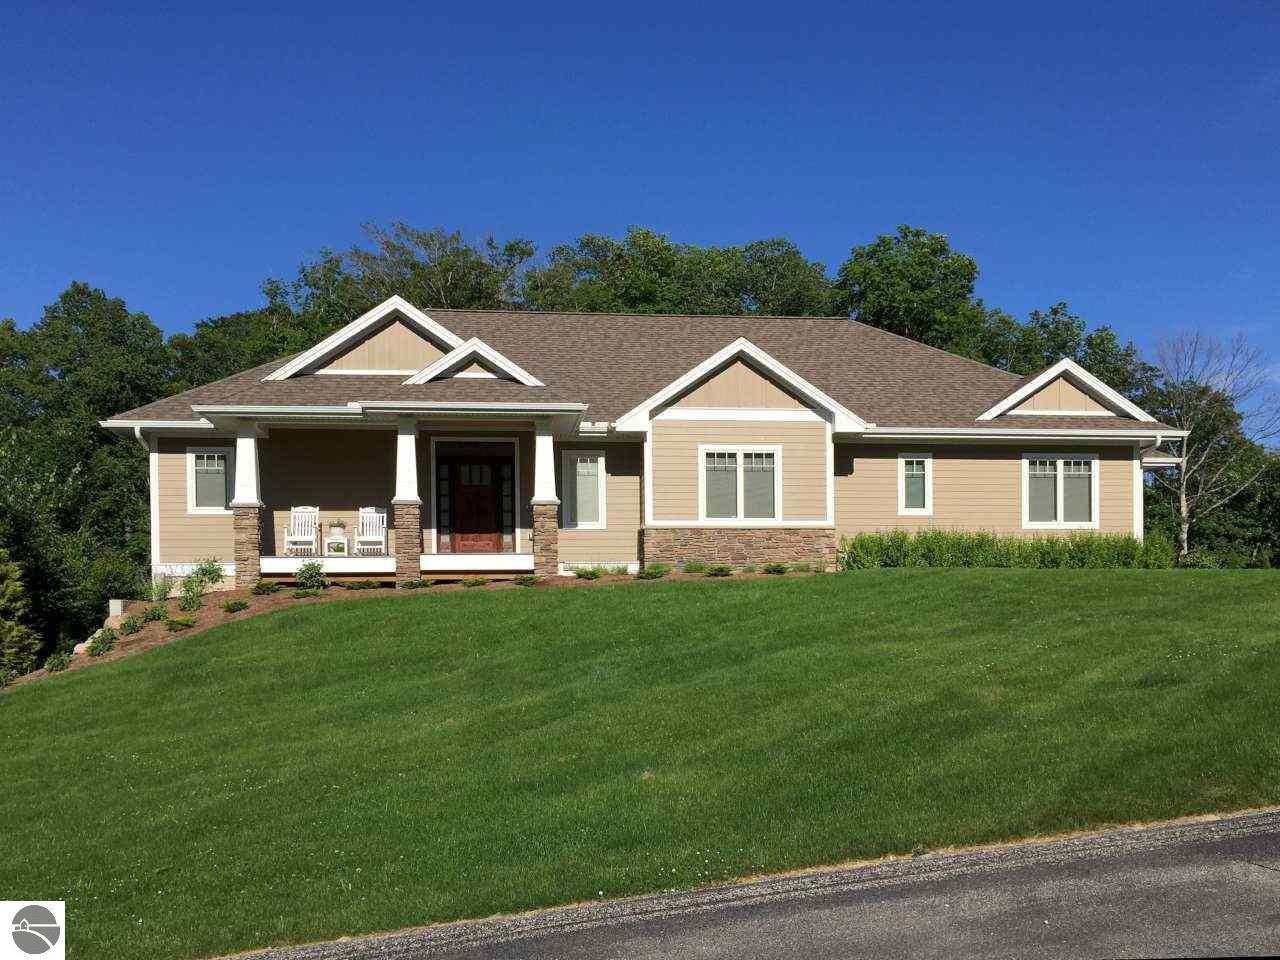 5014 Grayhawk Bvd, Traverse City, GrayHawk, house, real estate, sold by Oltersdorf Realty LLC (1).JPG